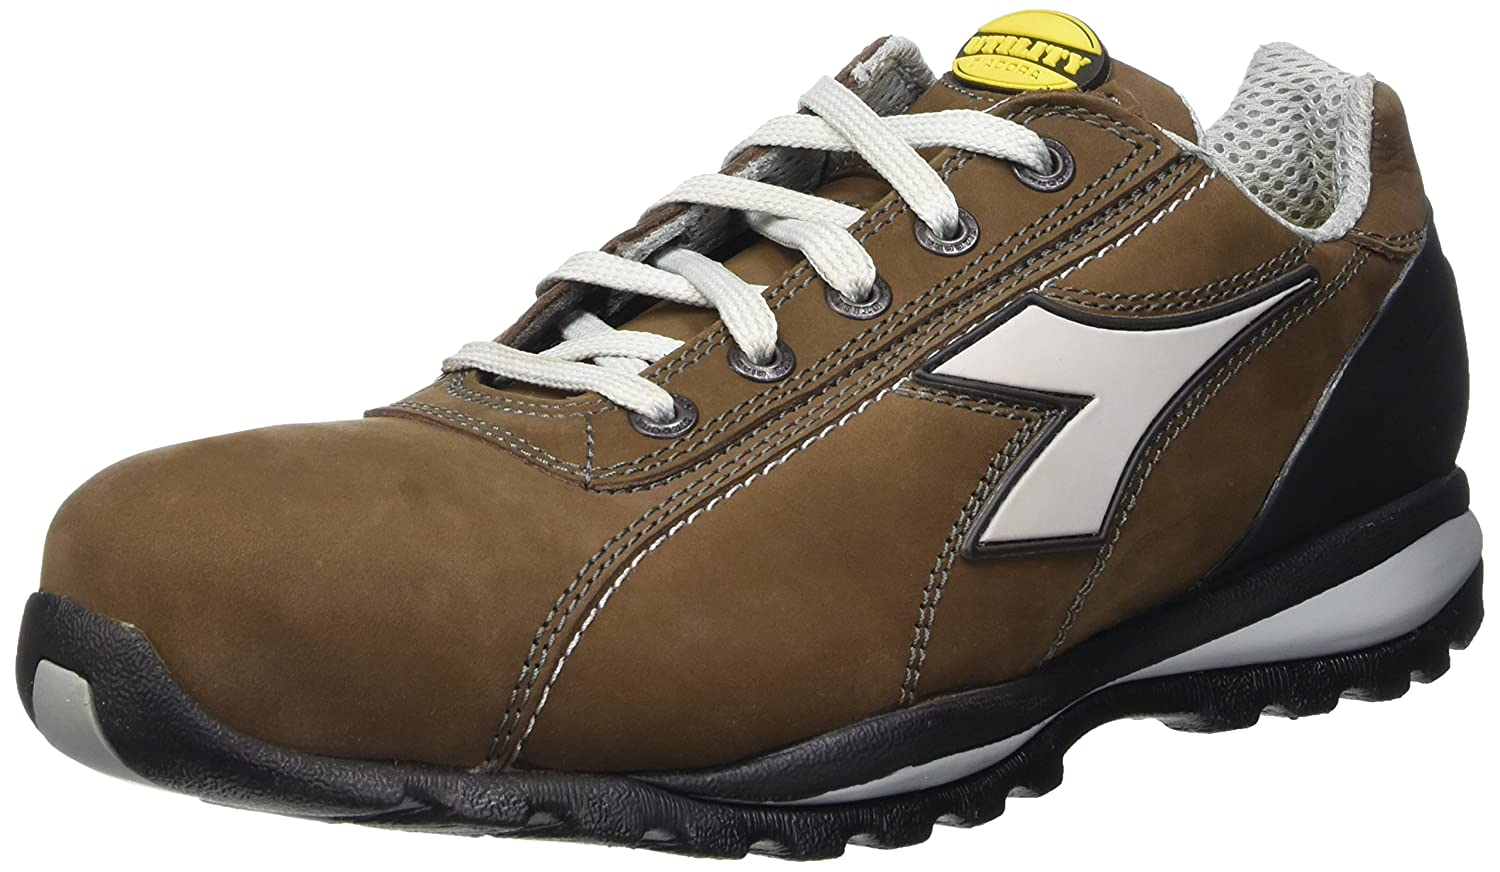 Diadora Mixte Glove II Low Scuro) S3 HRO, (Marrone Chaussures de Sécurité Mixte Adulte Marron (Marrone Scuro) cd59871 - automaticcouplings.space